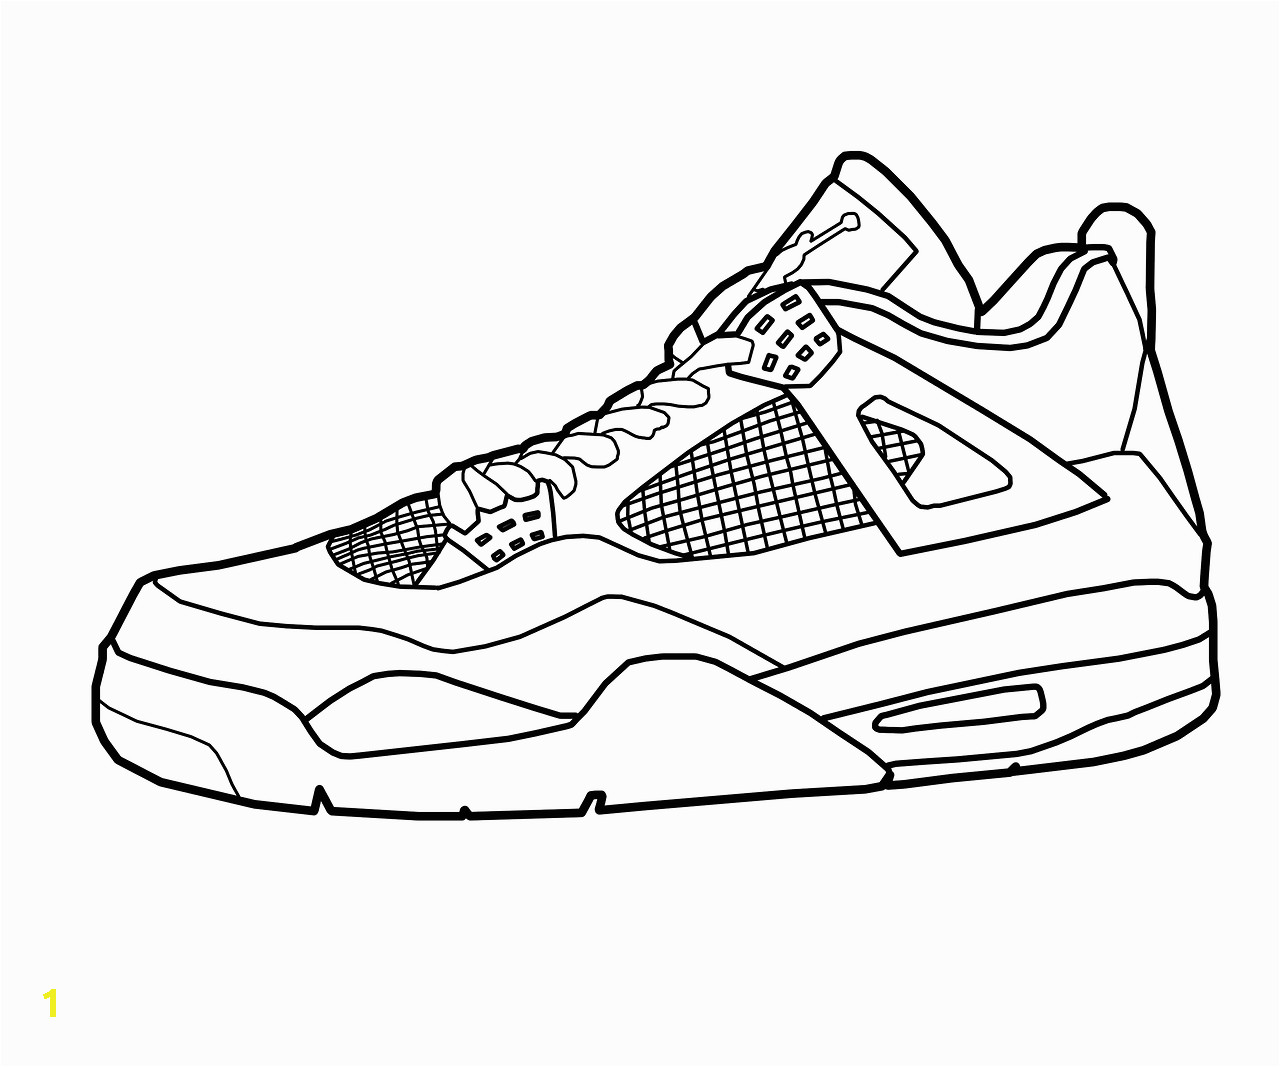 3303bef a92bb ed8f4a 28 collection of air jordan 4 drawing high quality free 1280 1067